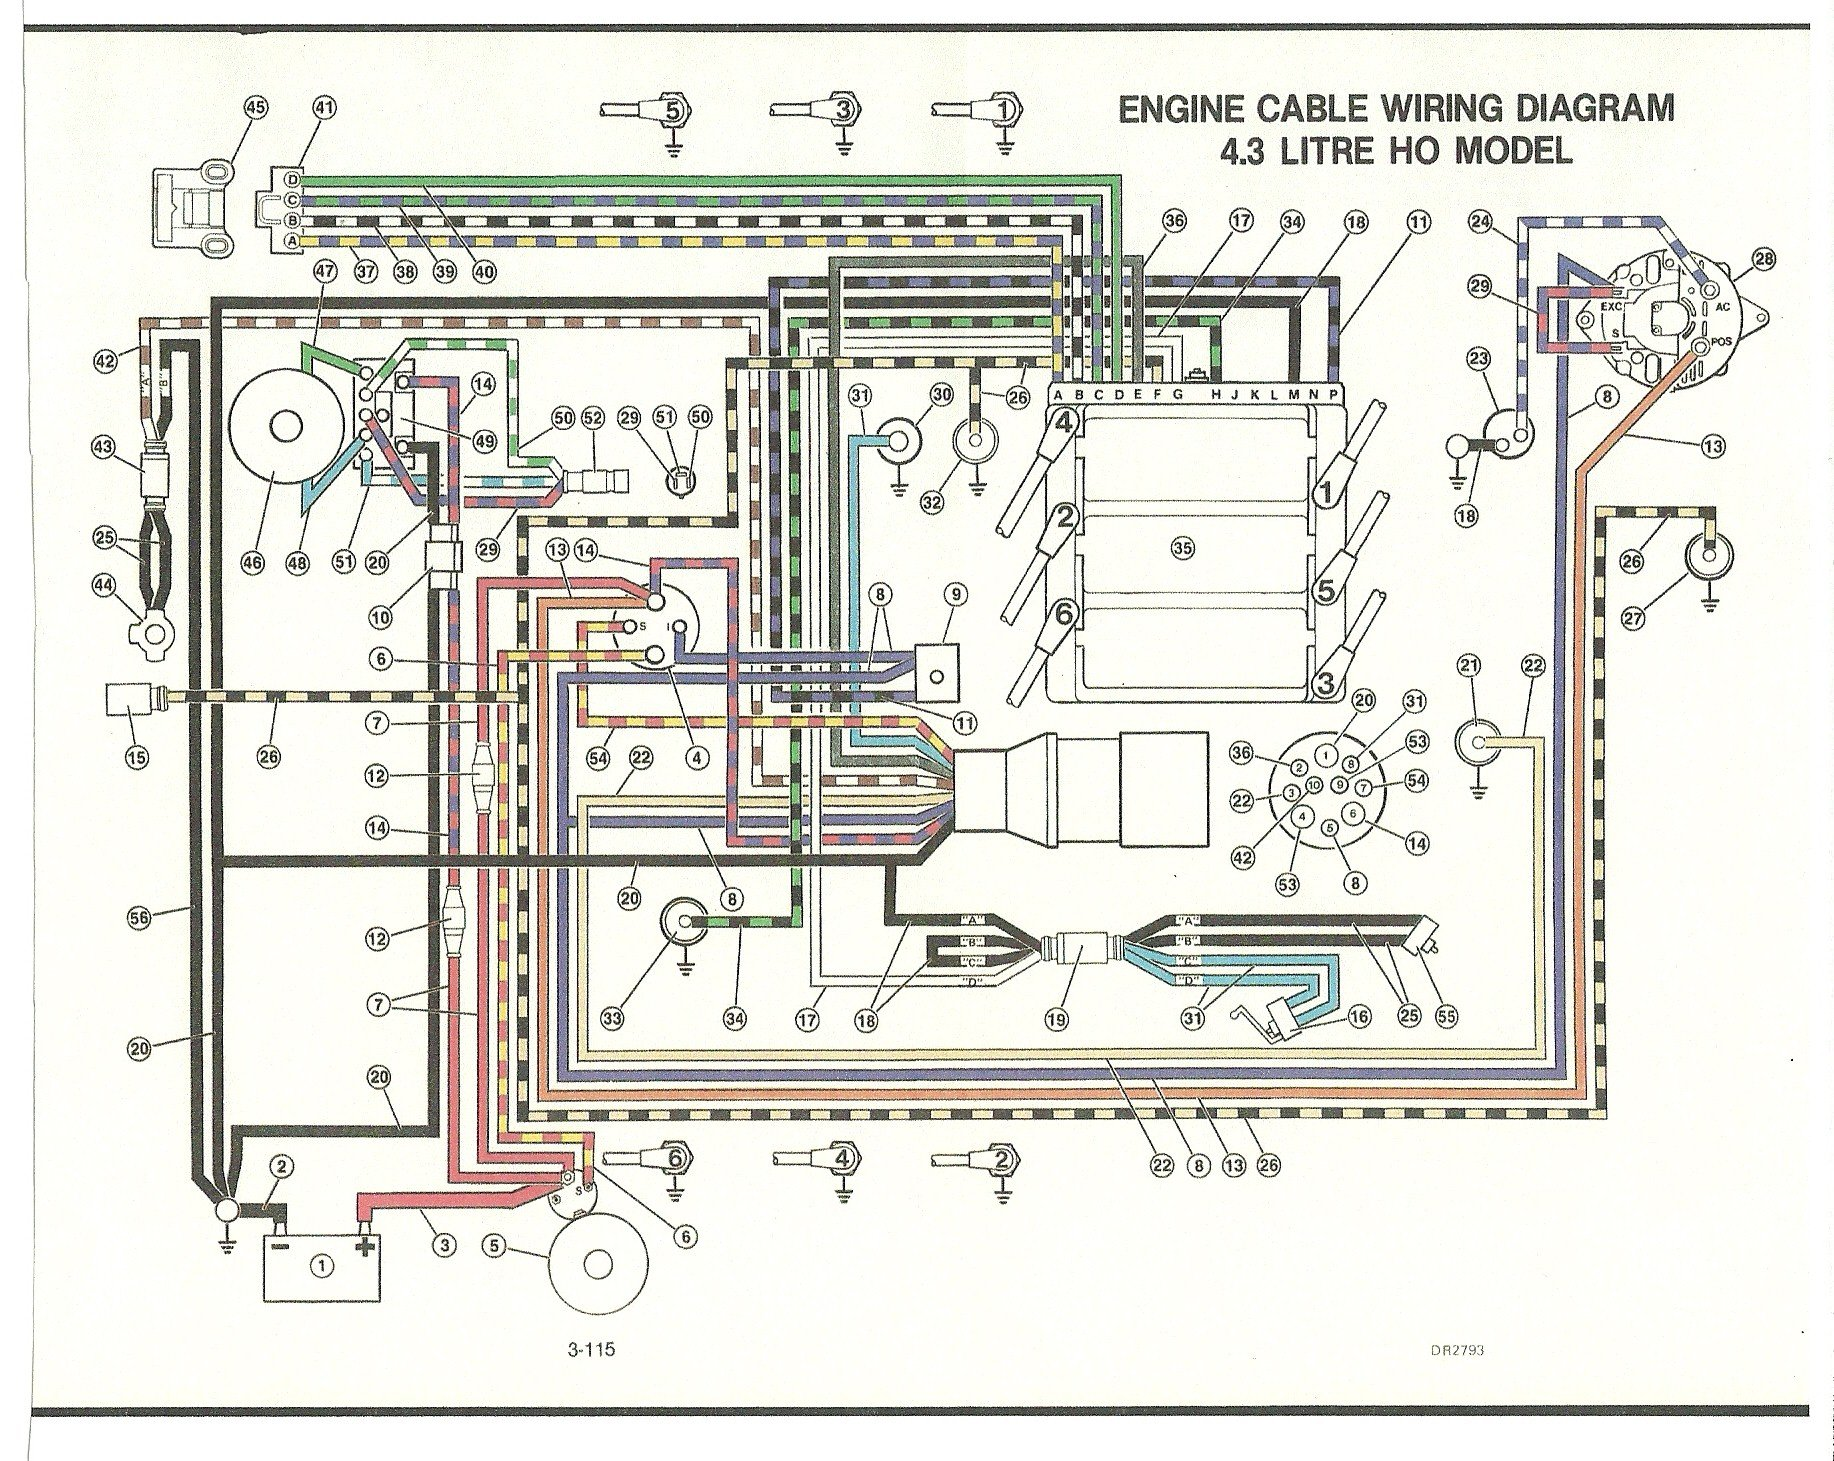 houseboat wiring diagram wiring diagram u2022 rh msblog co Boat Gauge Wiring Diagram Boat Light Wiring Diagram